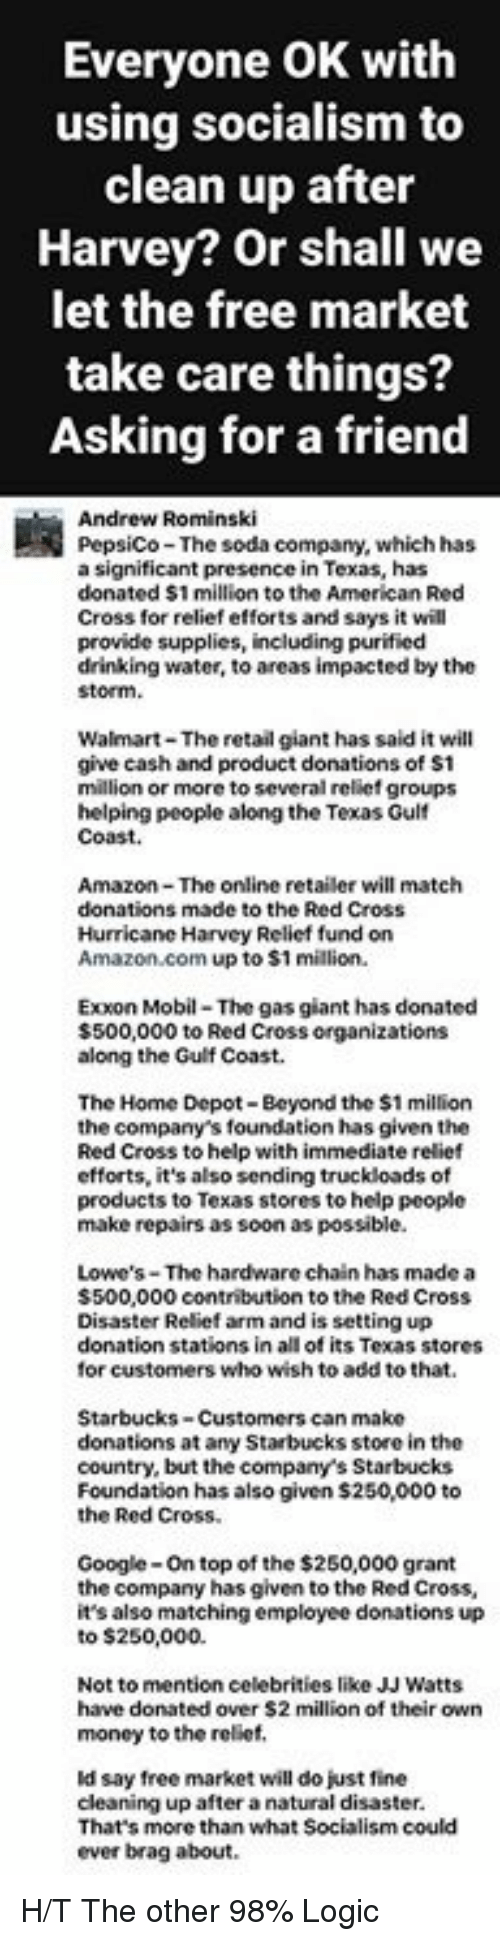 Walmarter: Everyone OK with  using socialism to  clean up after  Harvey? Or shall we  let the free market  take care things?  Asking for a friend  Andrew Rominski  PepsiCo-The soda company, which has  a significant presence in Texas, has  donated $1 million to the American Red  Cross for relief efforts and says it will  provide supplies, including purified  豳;  king water, to areas impacted by the  Walmart The retail giant has said it will  e cash and product donations of $1  million or more to several reliet groups  lping people along the Texas Gult  Coast.  Amazon-The online retailer will match  donations made to the Red Cross  Hurricane Harvey Relief fund on  Amazon.com up to $1 million.  xxon Mobil The gas giant has donated  $500,000 to Red Cross organizations  along the Gulf Coast  the company's foundation has given the  Red Cross to help with immediate relief  efforts, it's also sending truckloads o  roducts to Texas stores to help people  ake repairs as soon as possible  Lowe's-The hardware chain has made a  $500,000 contribution to the Red Cross  Disaster Relief arm and is setting up  nation stations in all of its Texas stores  for customers who wish to add to that.  tarbucks-Customers can make  donations at any Starbucks store in the  country, but the company's Starbucks  Foundation has also given $250,000 to  the Red Cross  Google-On top of the $250,000 grant  he company has given to the Red Cross,  it's also matching employee donations up  to $250,000.  ot to mention celebrities like JJ Watts  have donated over $2 million of their own  money to the relief,  say free market will do just fine  cleaning up after a natural disaster.  That's more than what Socialism could  ever brag about H/T The other 98% Logic